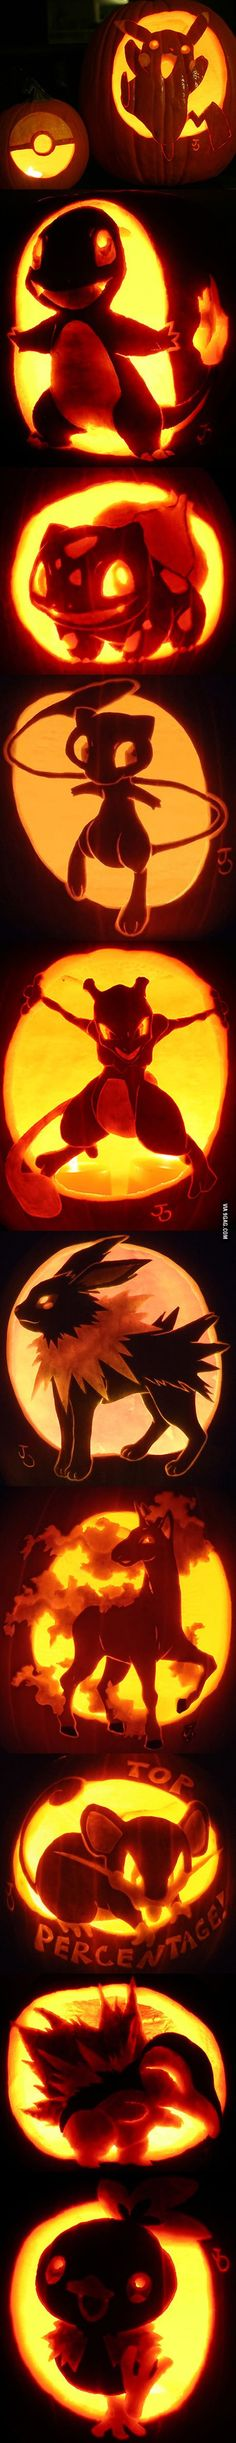 Pokemon Jack-O'-Lantern Pumpkin Art